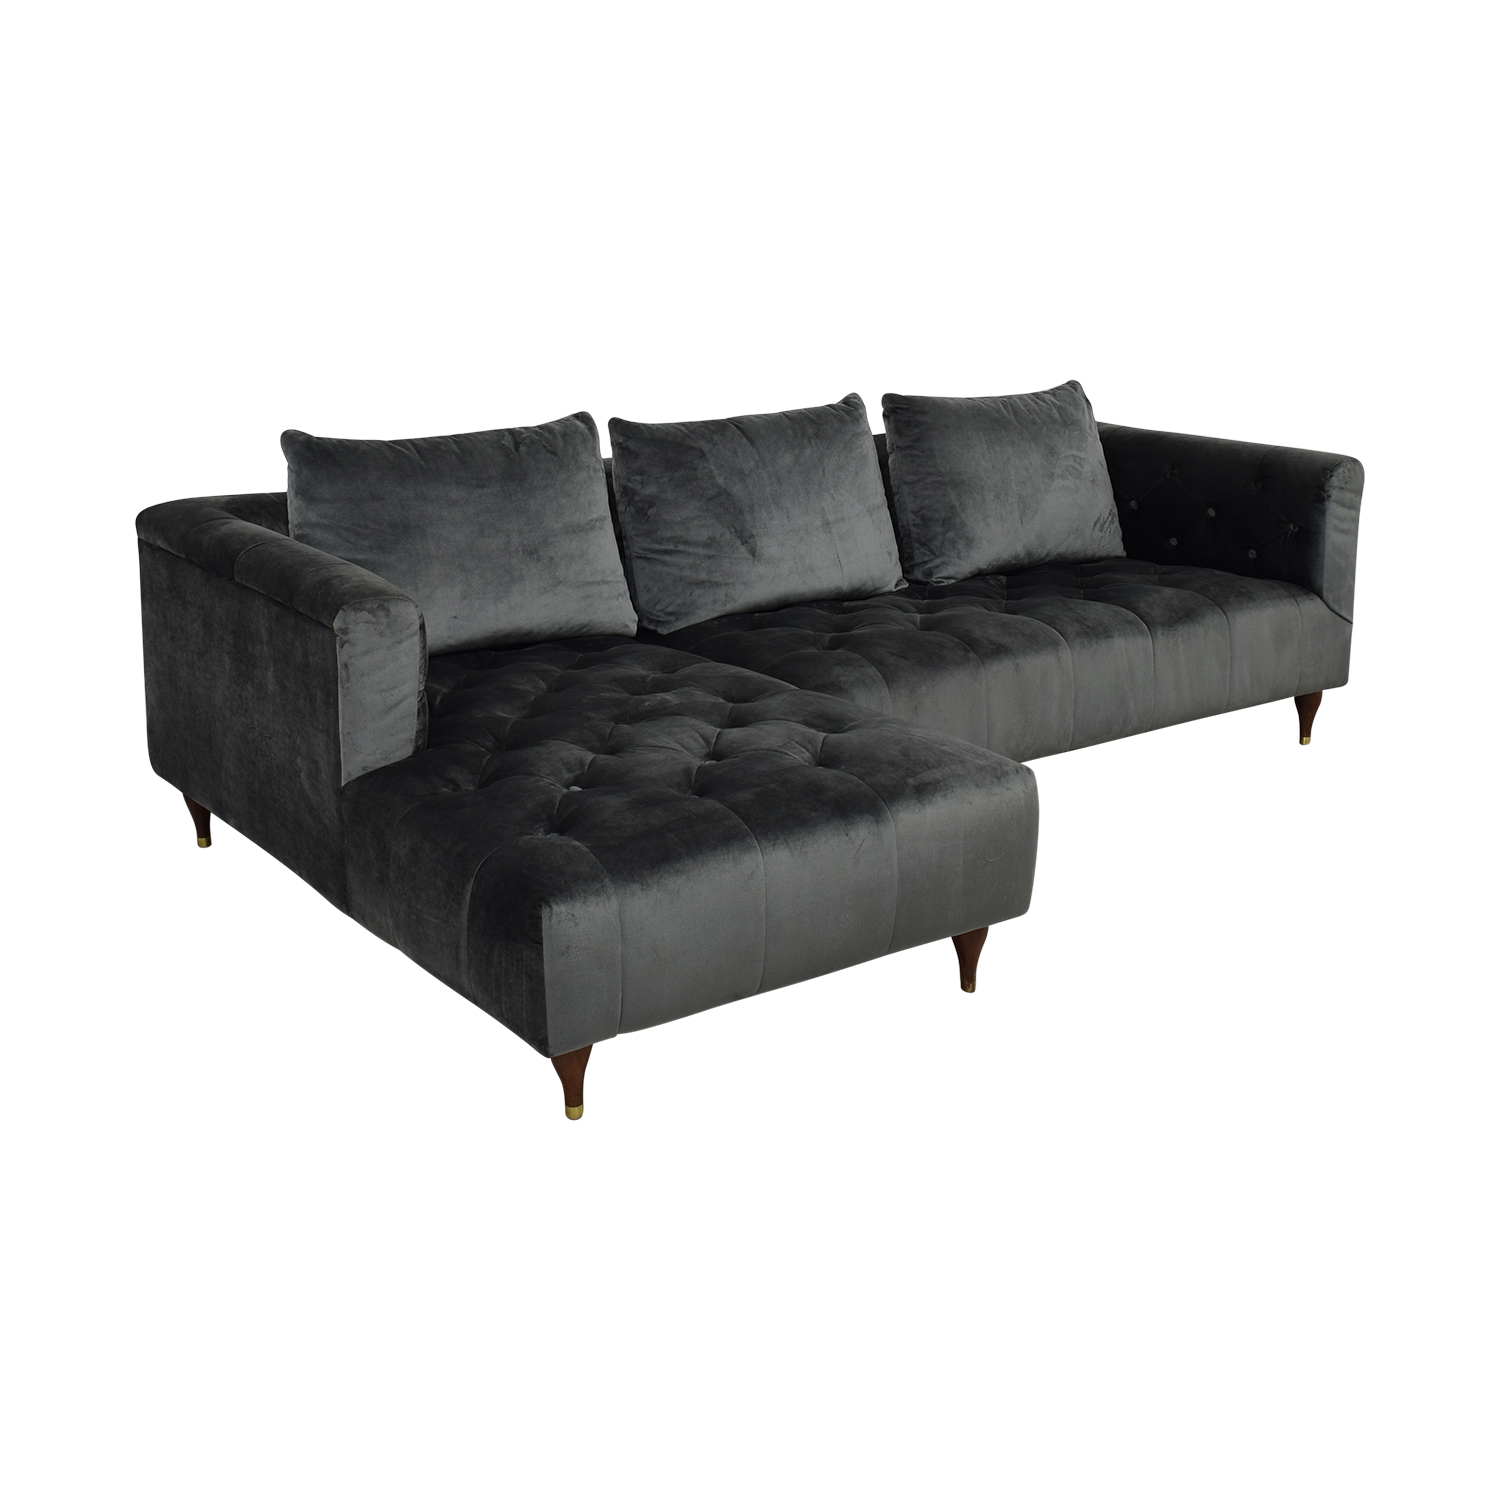 Interior Define Ms. Chesterfield Sectional Sofa with Left Chaise used